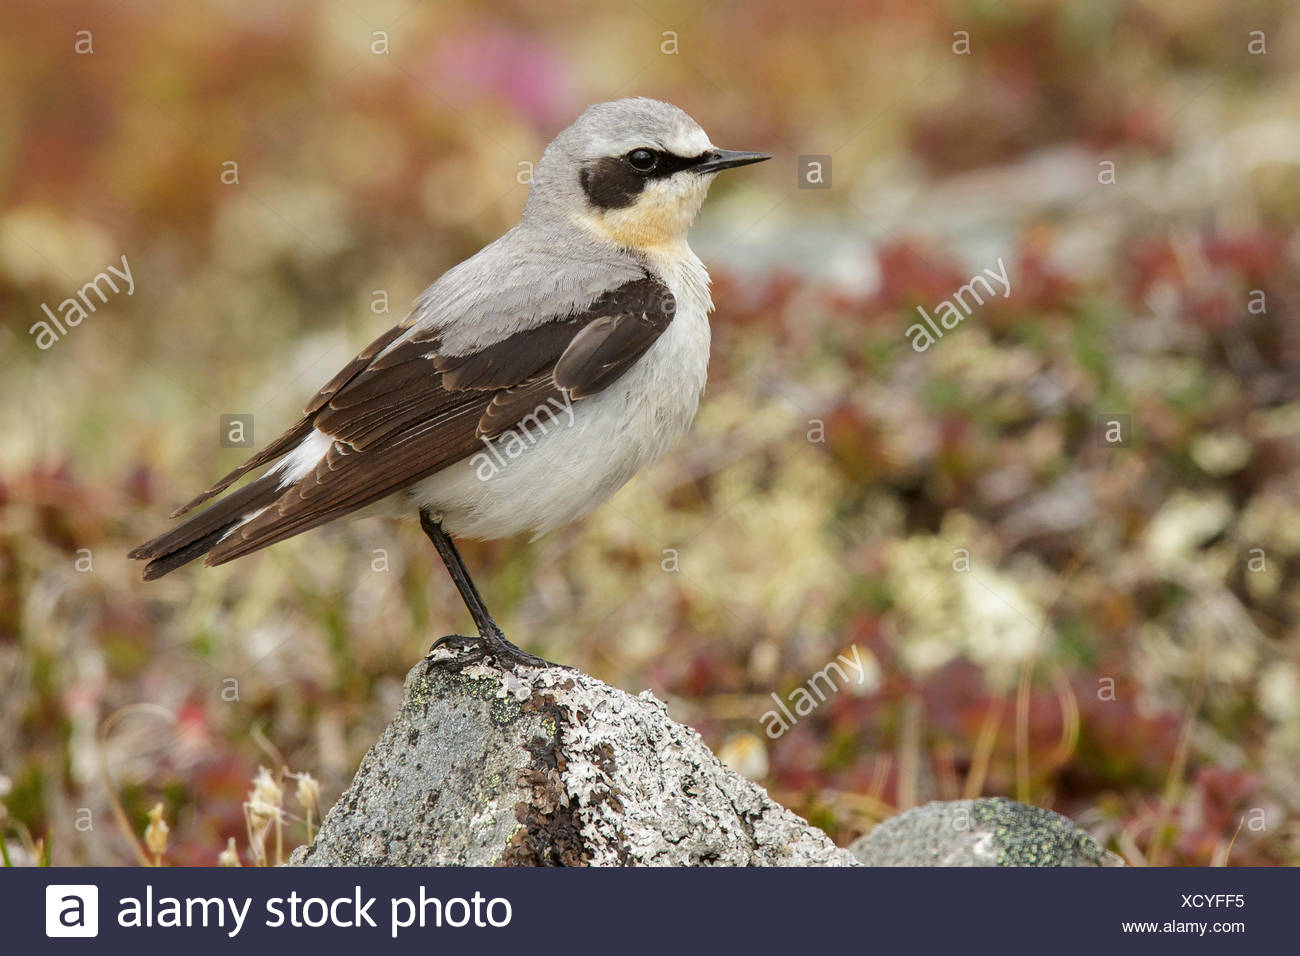 Northern Wheatear (Oenanthe oenanthe) perched on the tundra in Nome, Alaska. - Stock Image